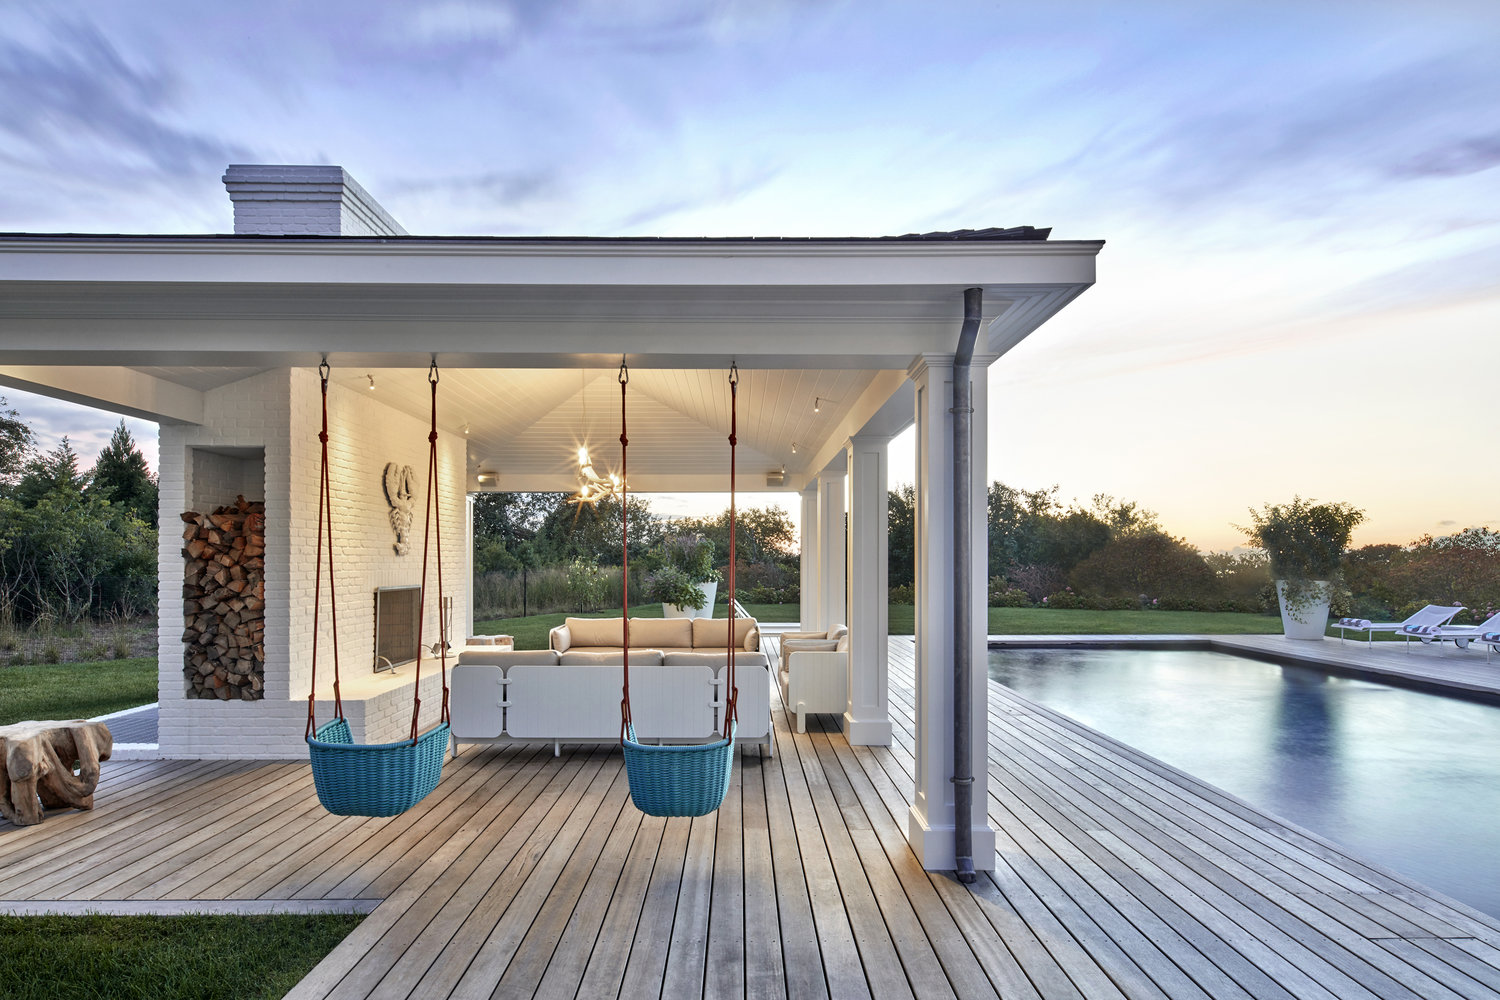 MONTAUK BEACH HOUSE, NY. ARCHITECT: ARCOLOGICA    |   PHOTO: GARRETT ROWLAND